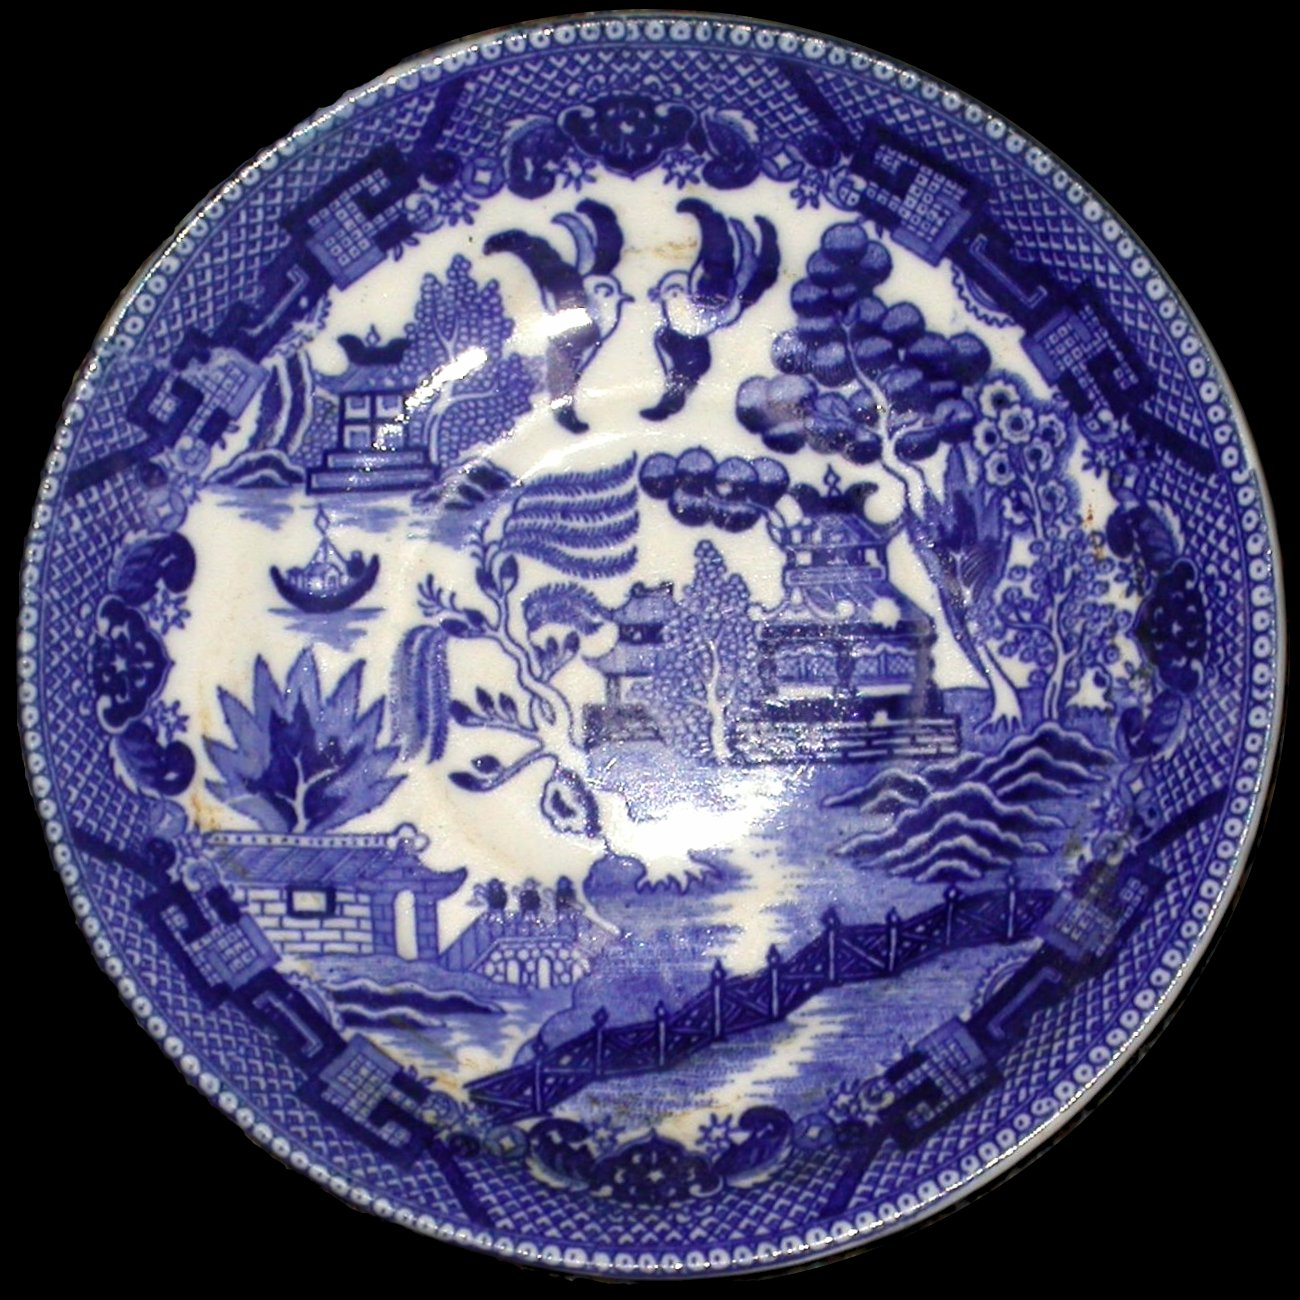 Willow Pattern